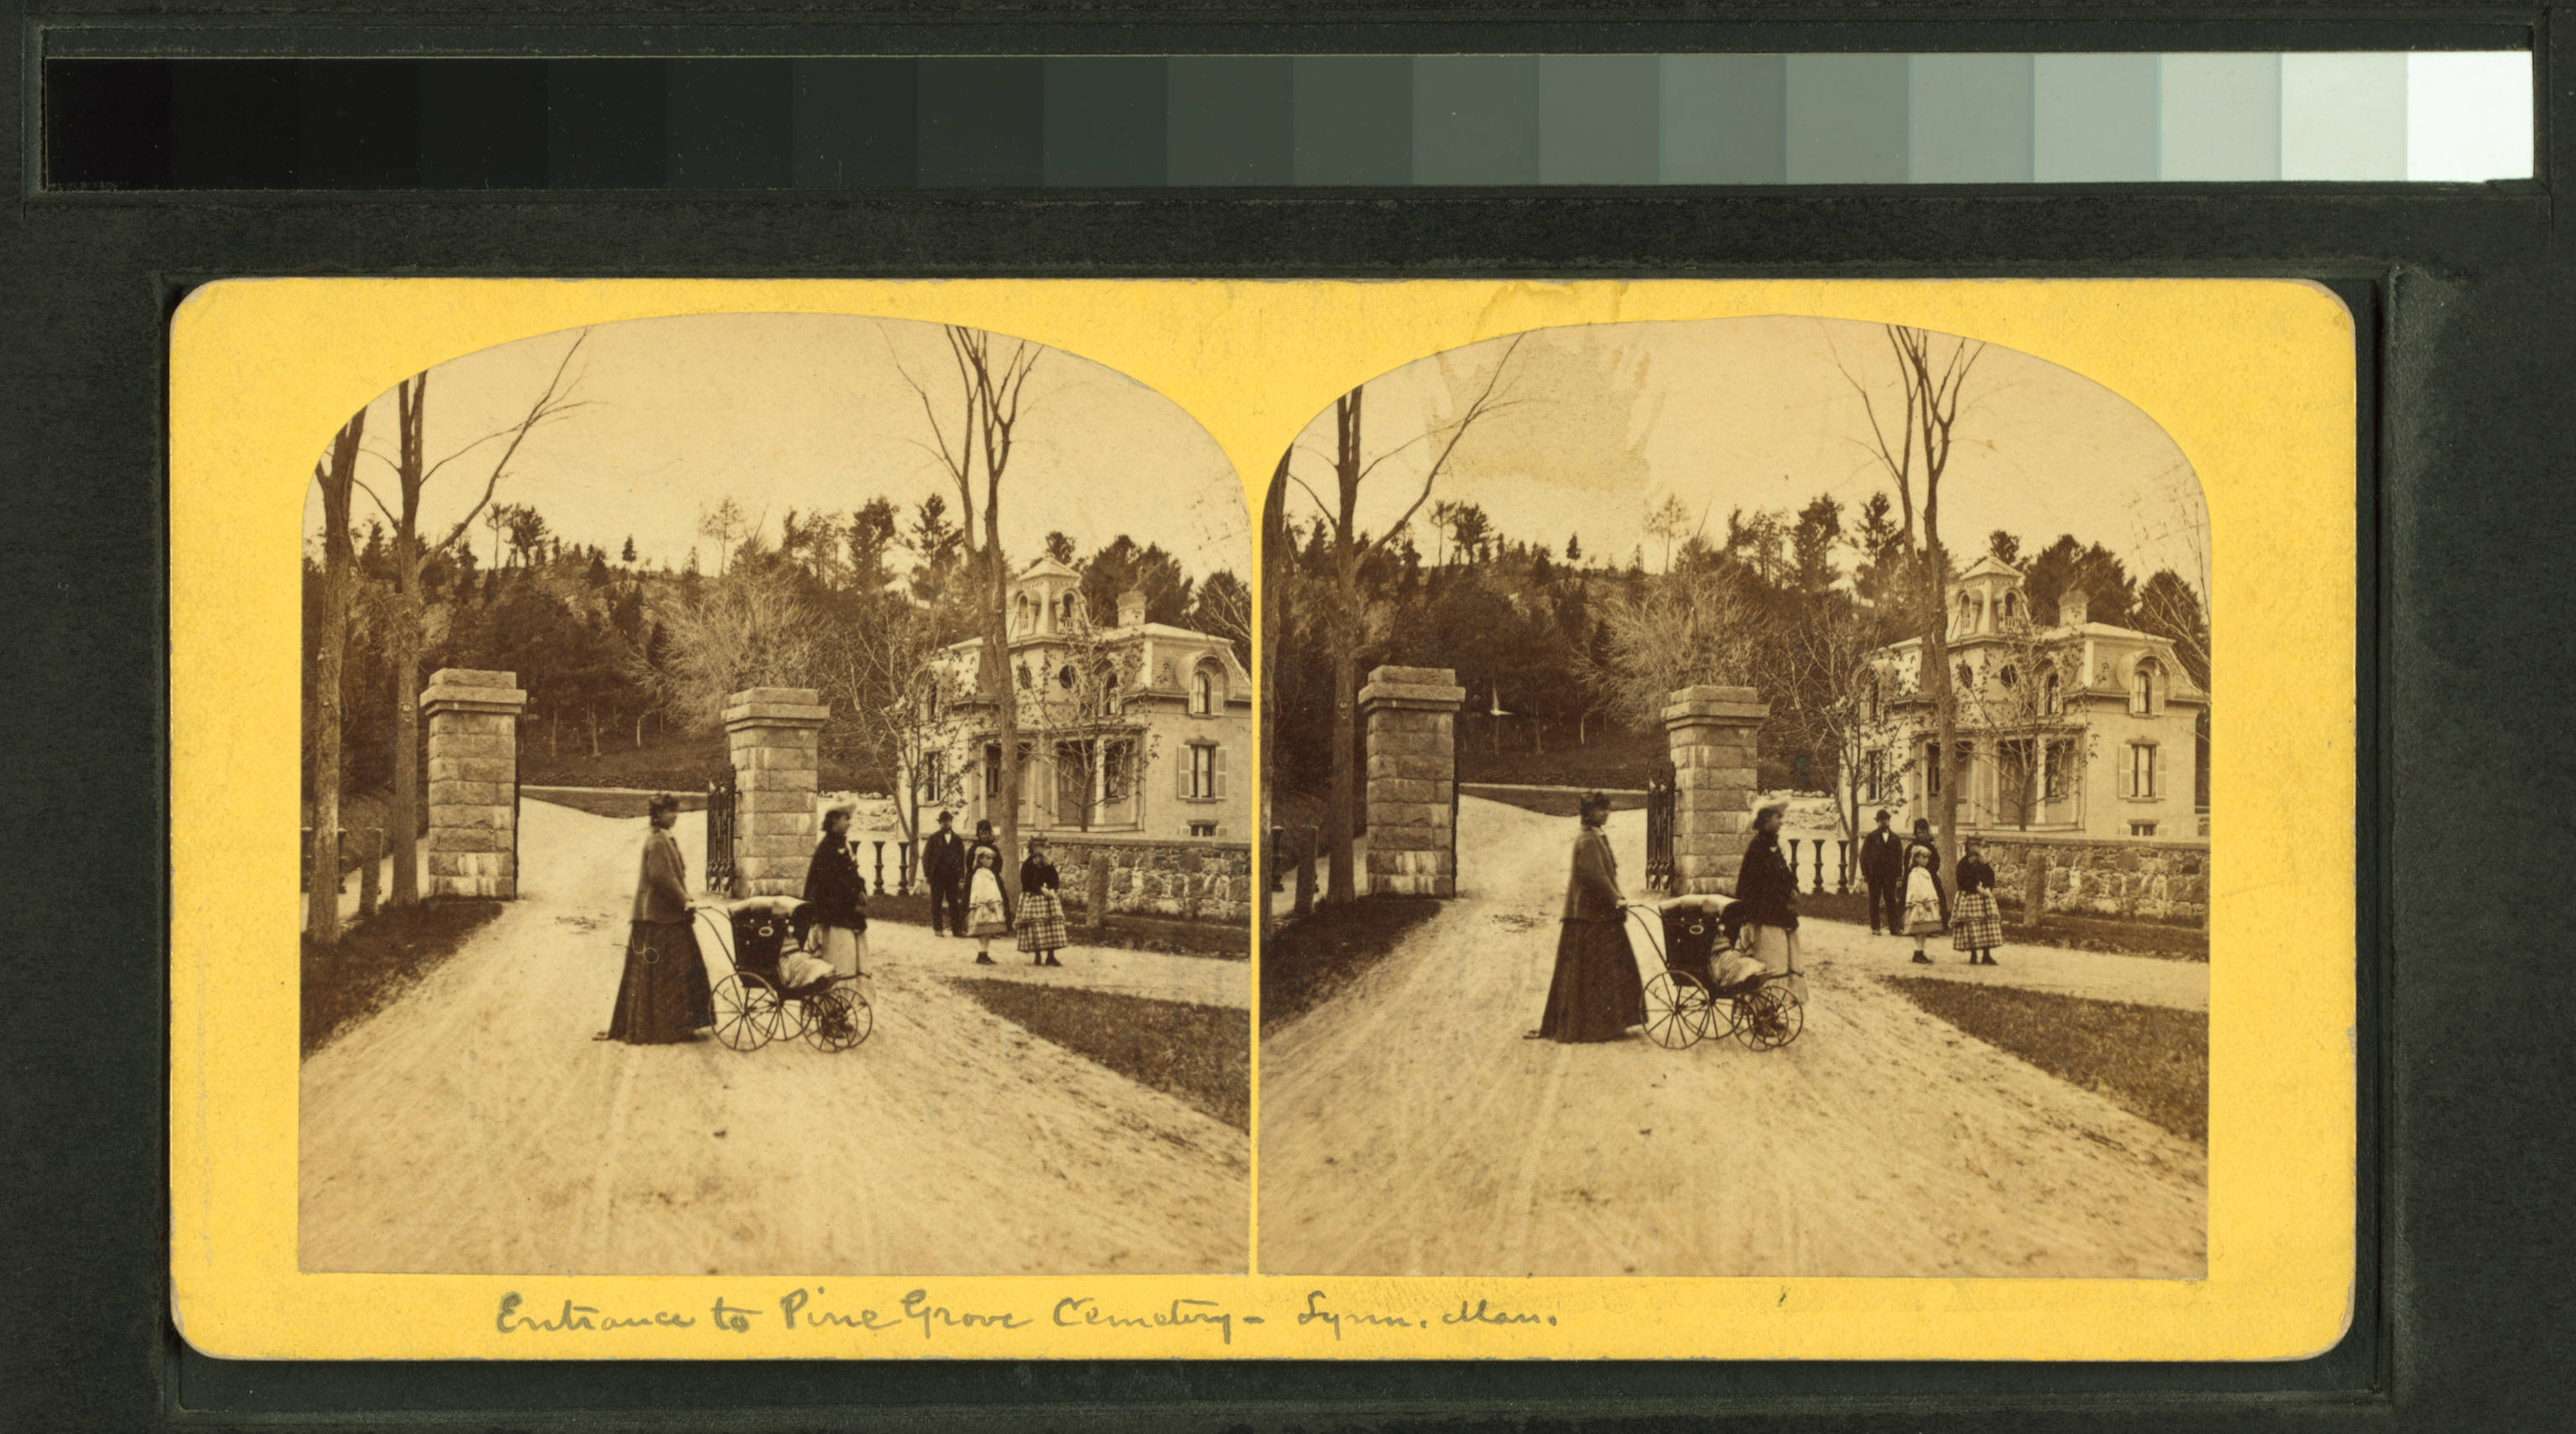 Vintage stereo card of a park, New York Public Library